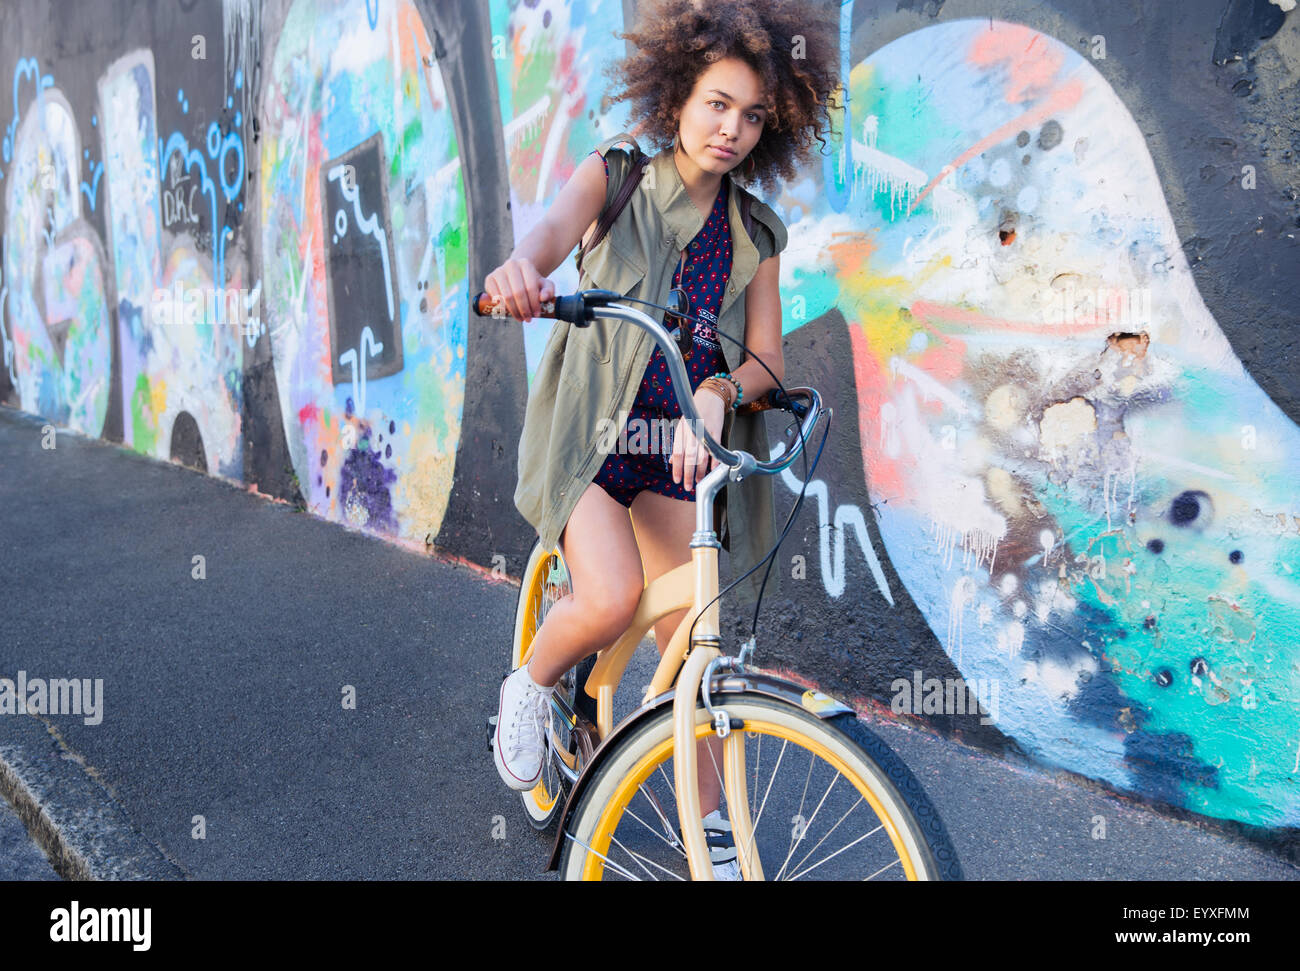 Portrait serious woman with afro on bicycle next to urban graffiti wall - Stock Image